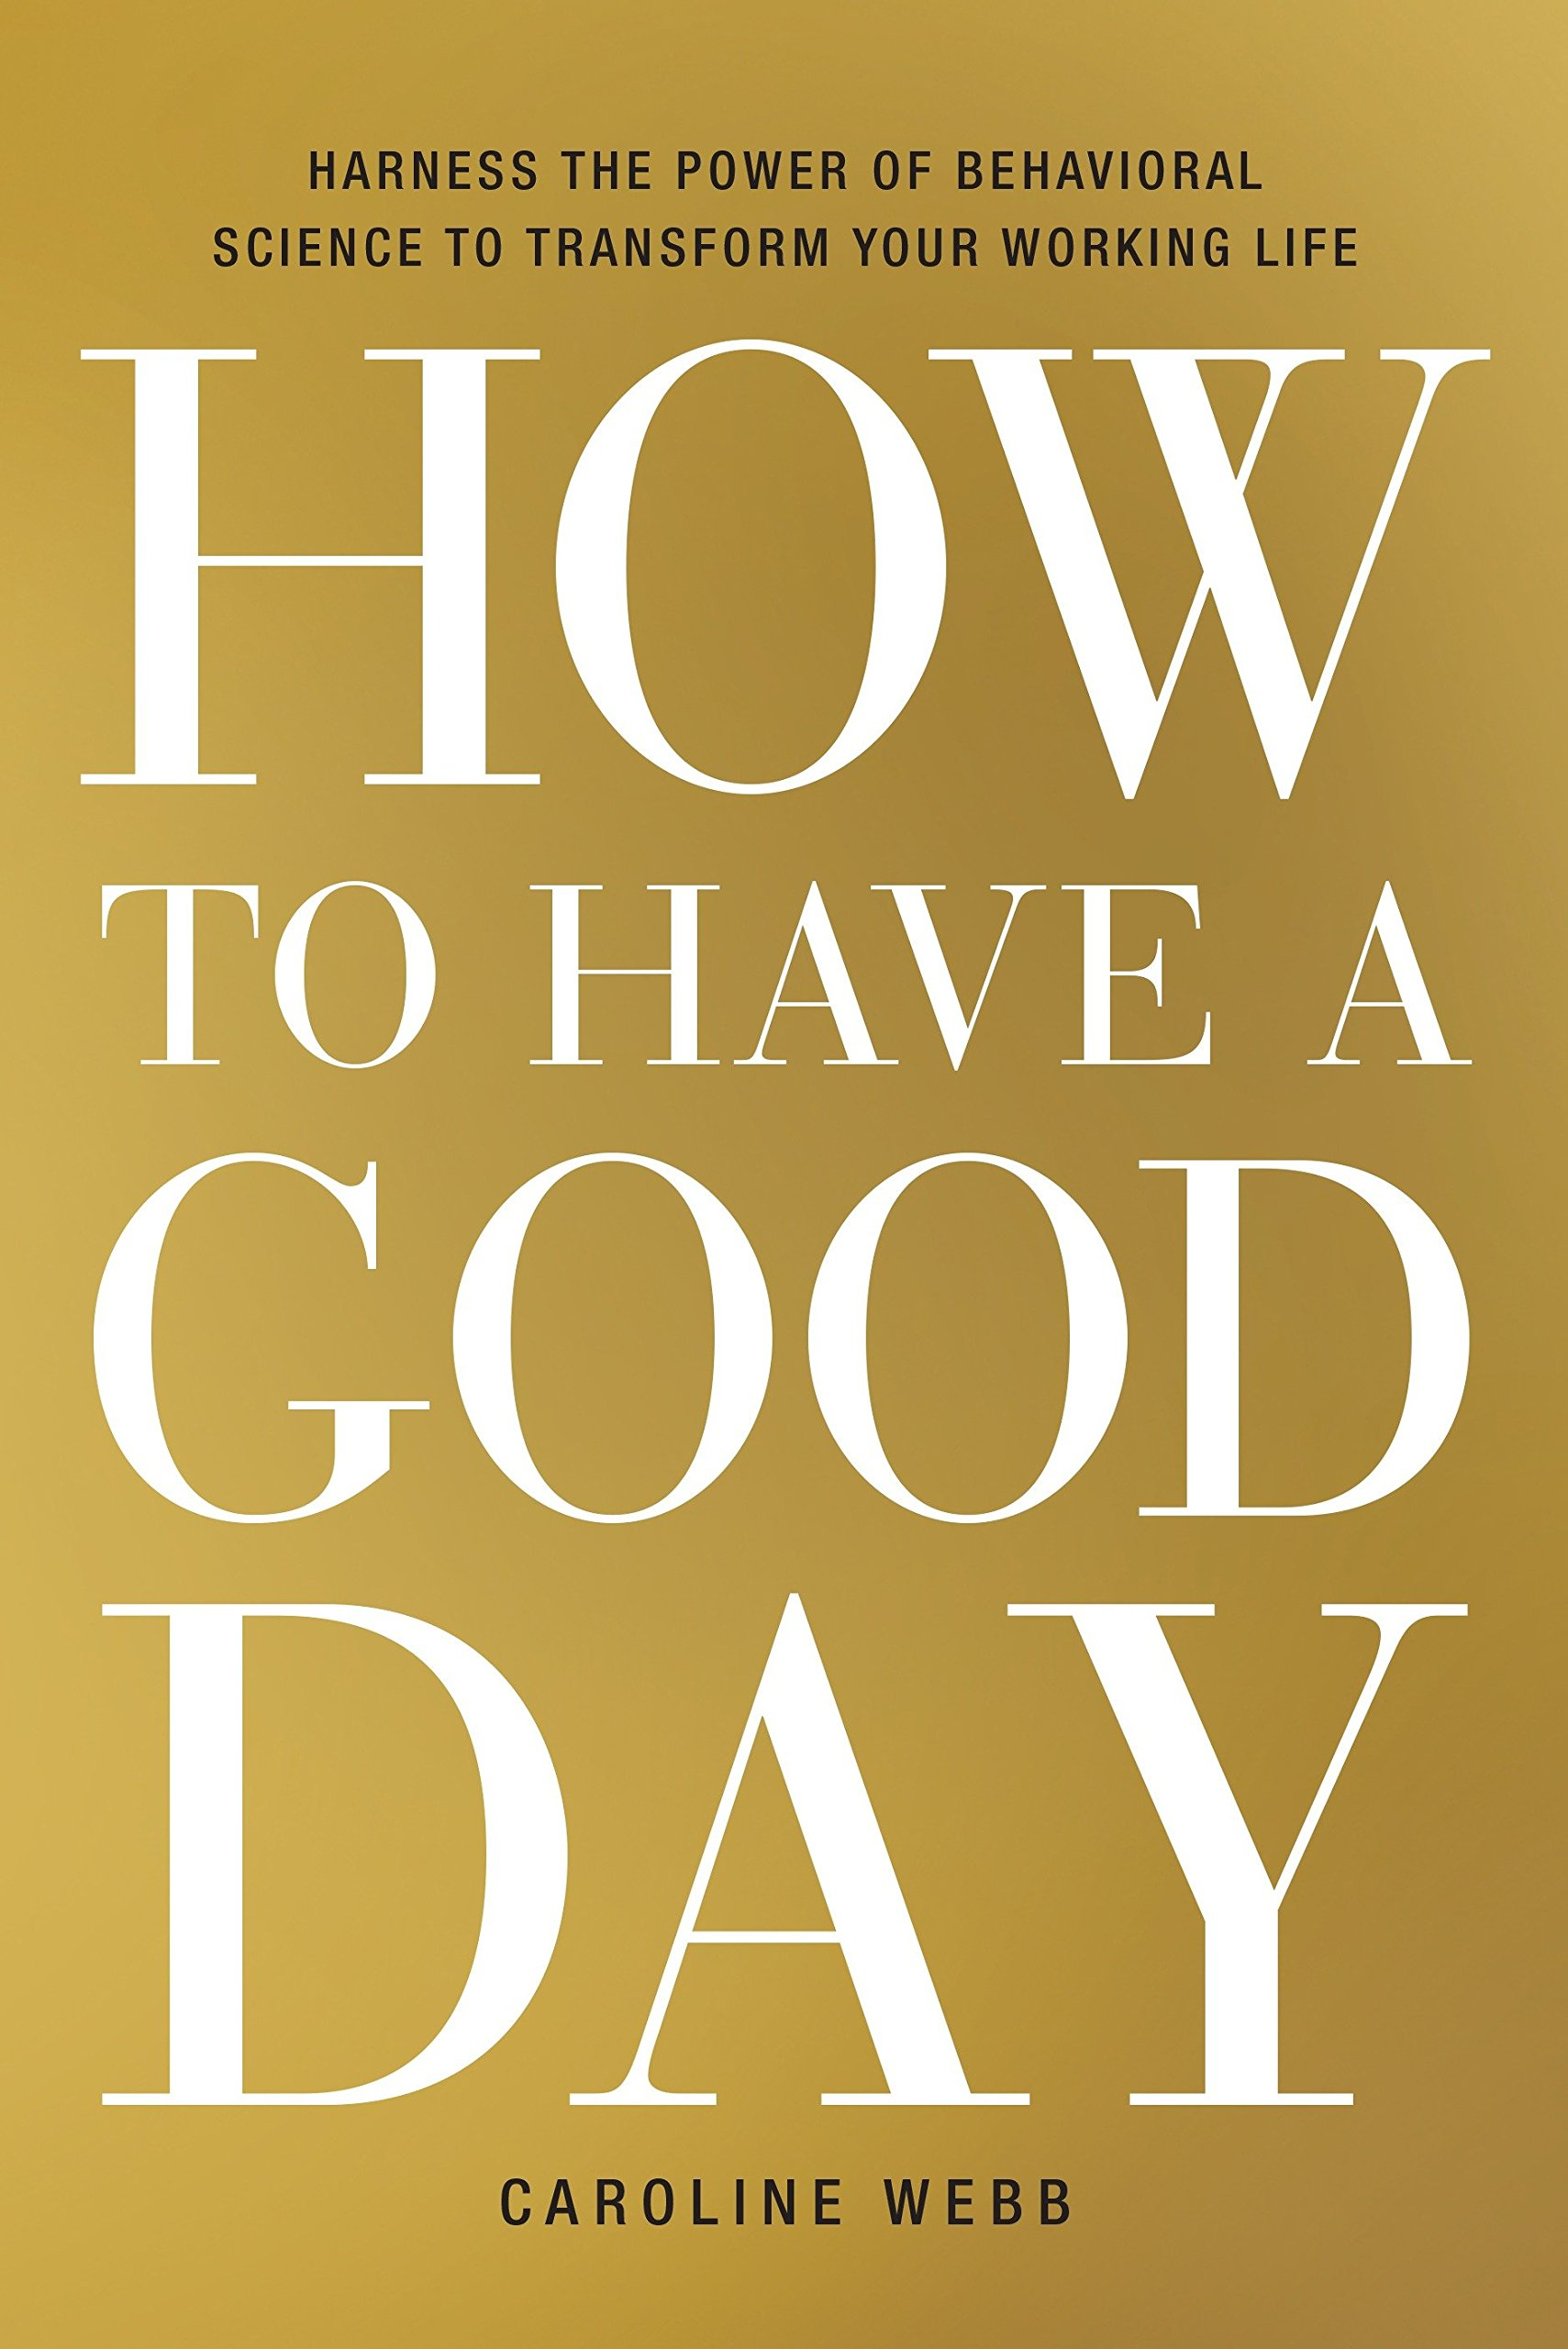 How to Have a Good Day: Harness the Power of Behavioral Science to Transform Your Working Life: Amazon.es: Caroline Webb: Libros en idiomas extranjeros